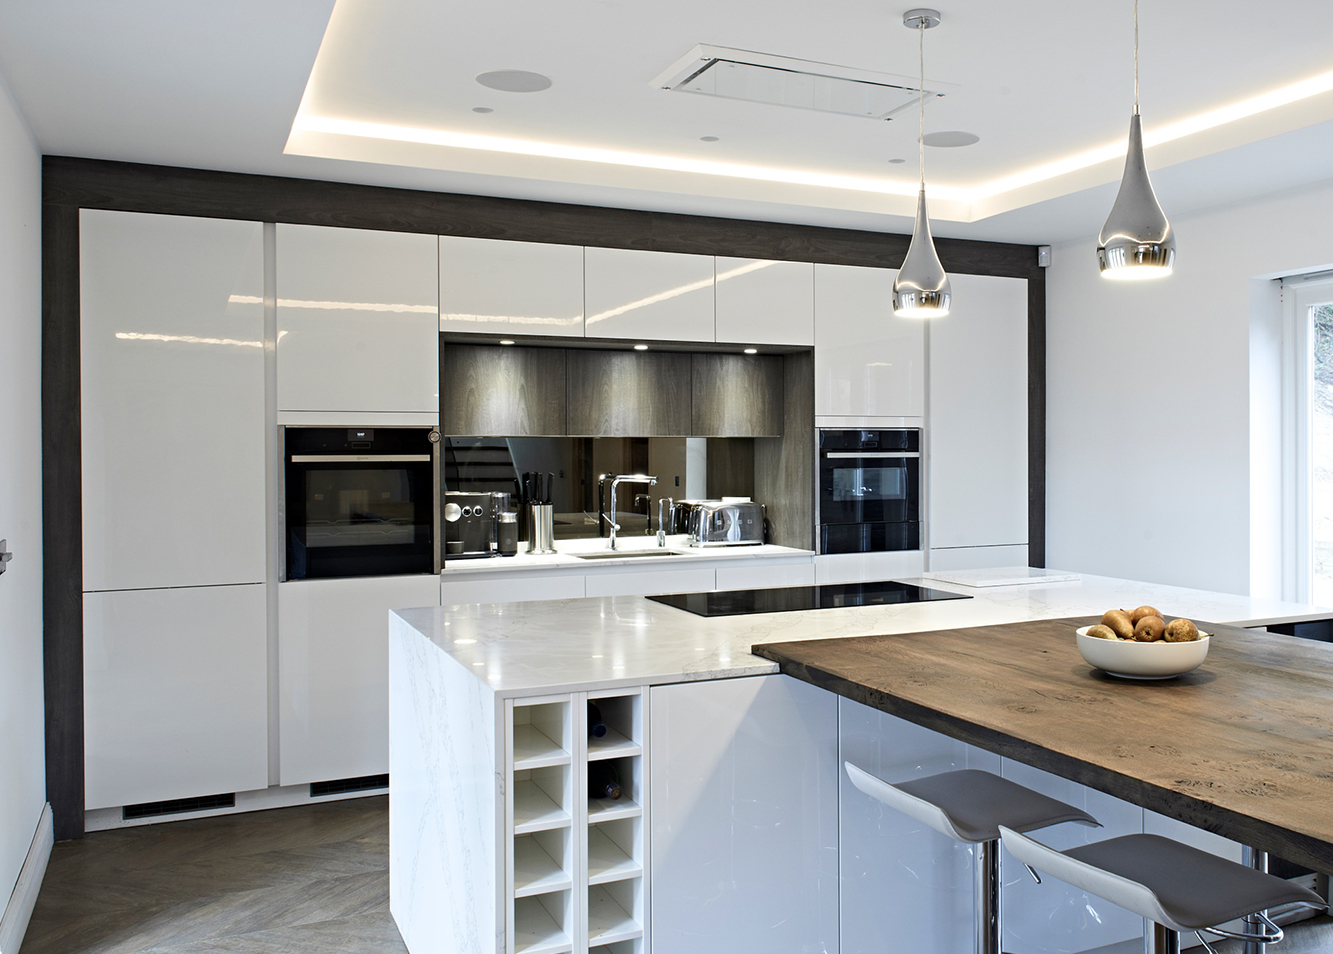 4 Bauformat Kitchen, Windrush, SG12 Images Featured Images